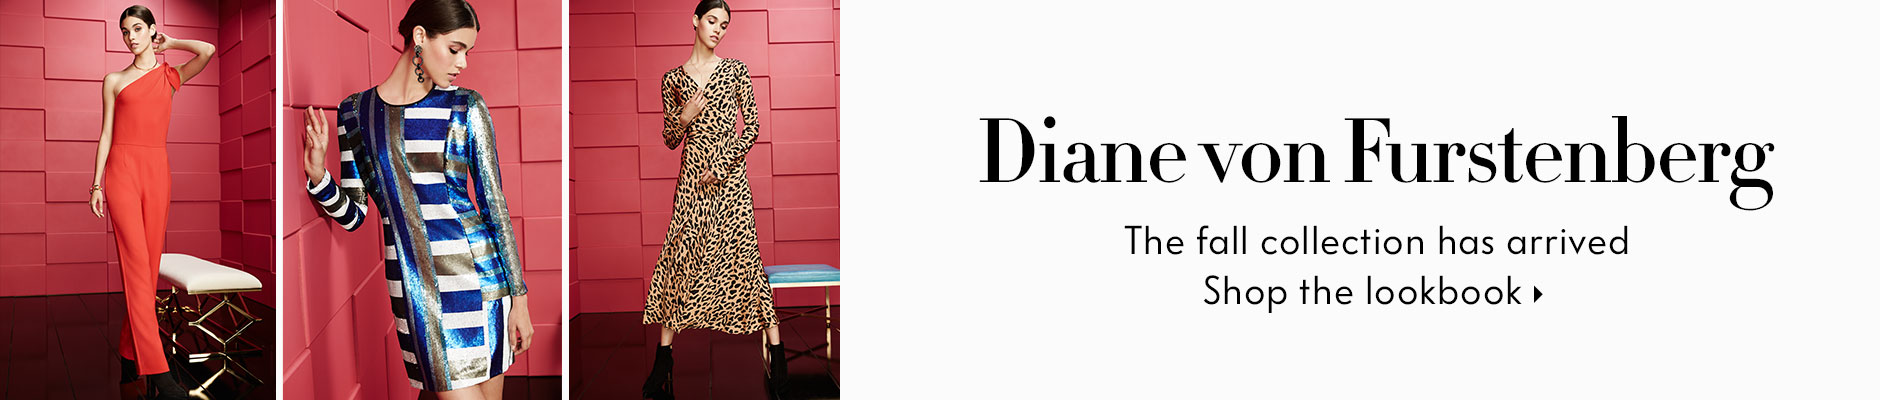 Diane Von Furstenberg Lookbook